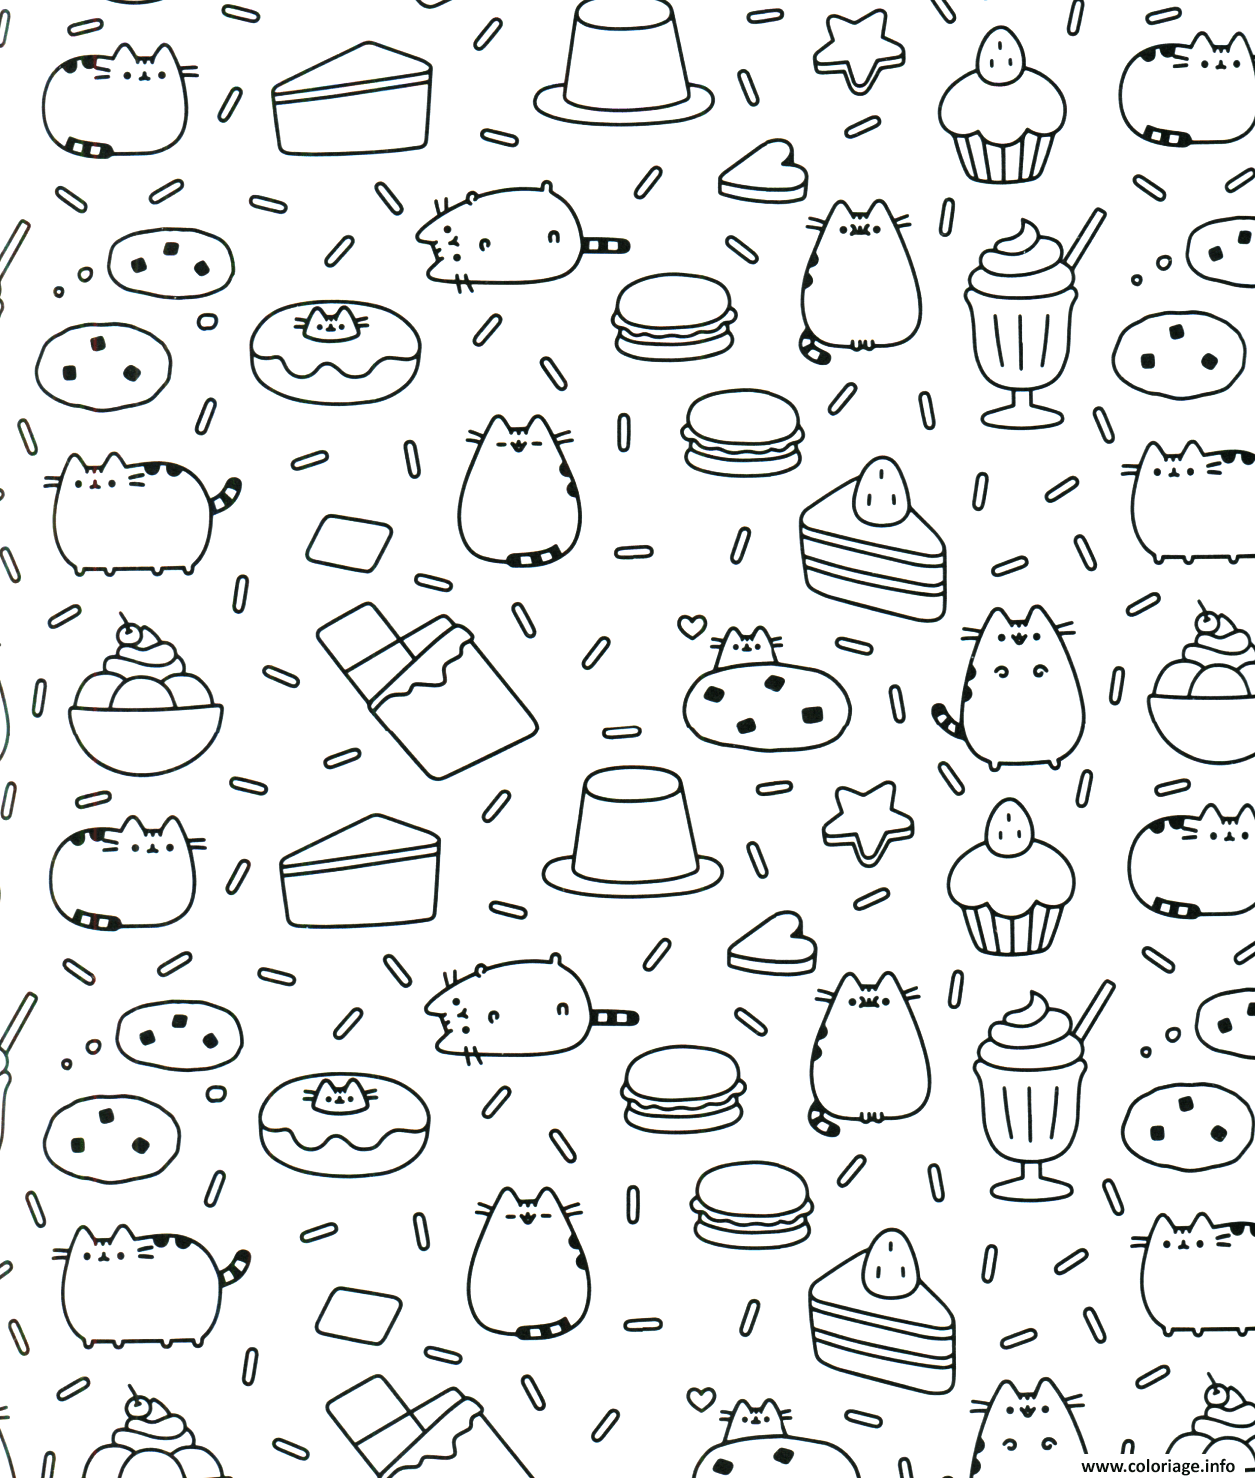 Dessin Pusheen the Cat Therapy for Adults Coloriage Gratuit à Imprimer